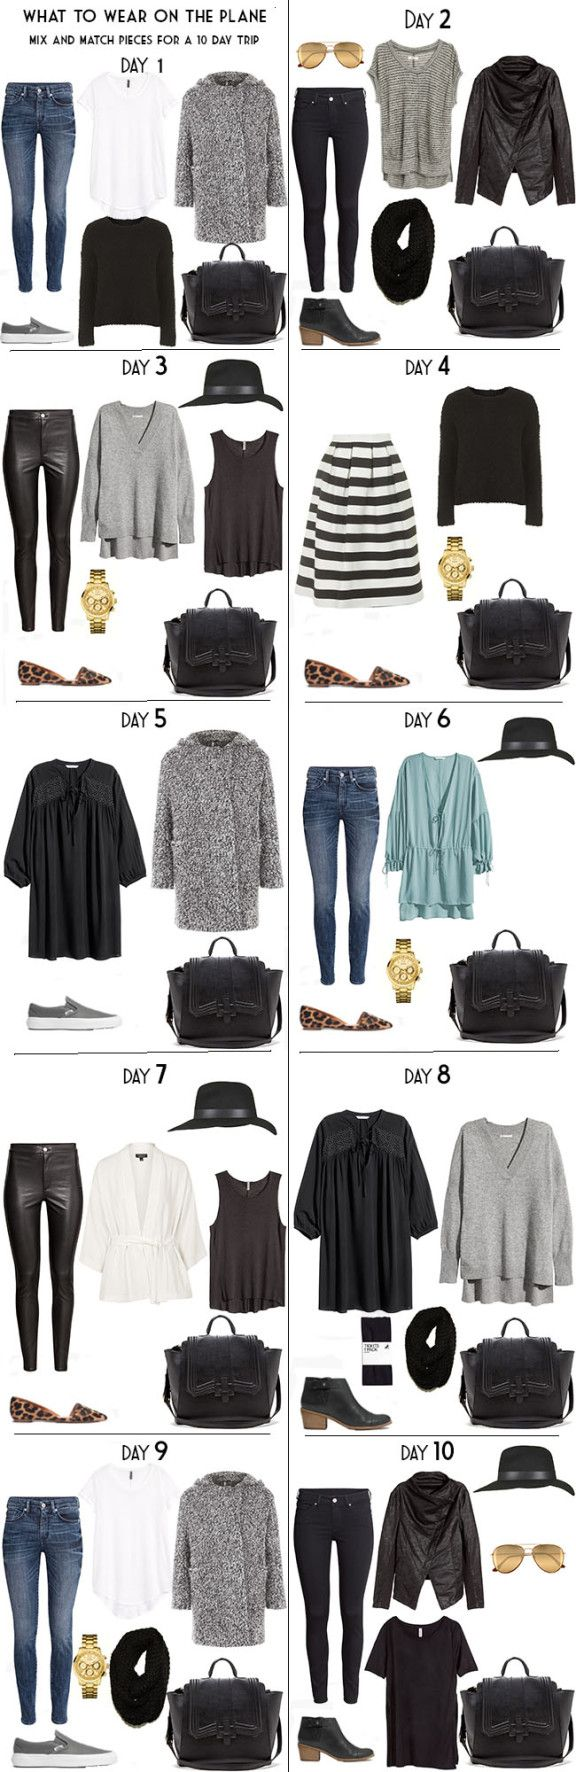 10 Days in Stockholm Day Outifts - except in color. Black and gray = dreary and depressing